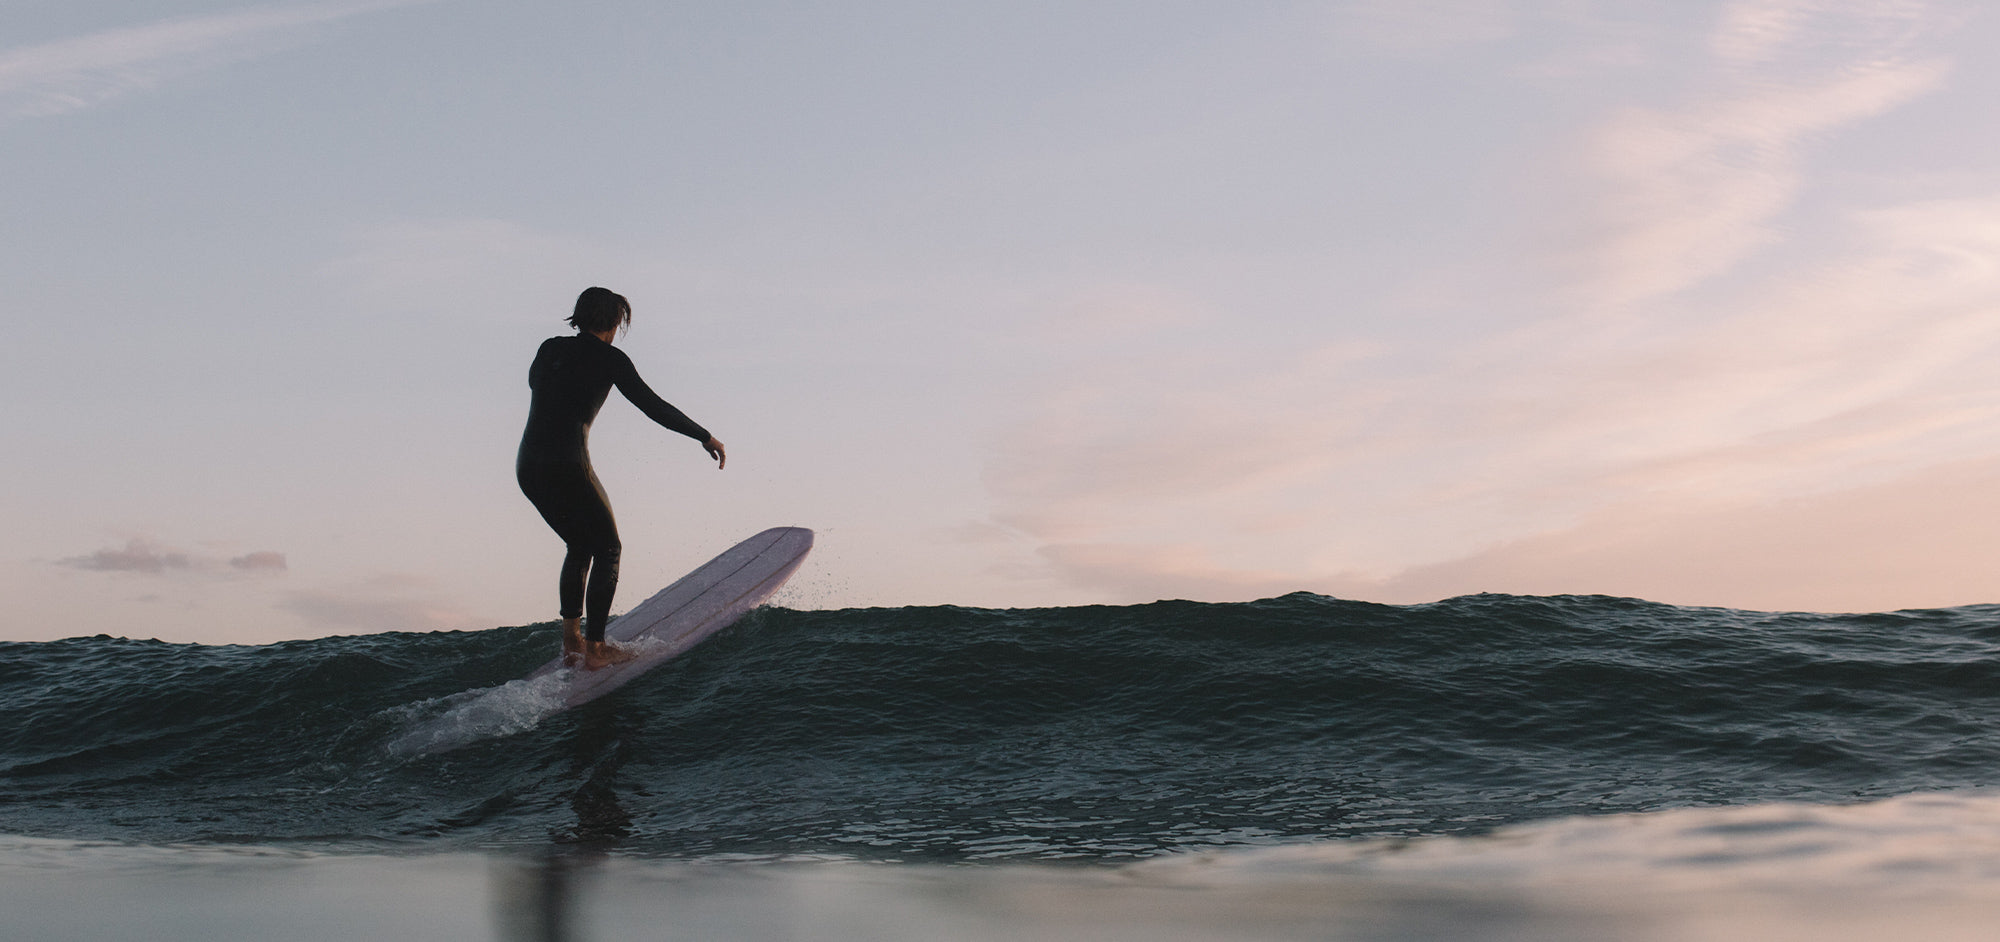 Man stands on his longboard riding over the incoming surf swell.